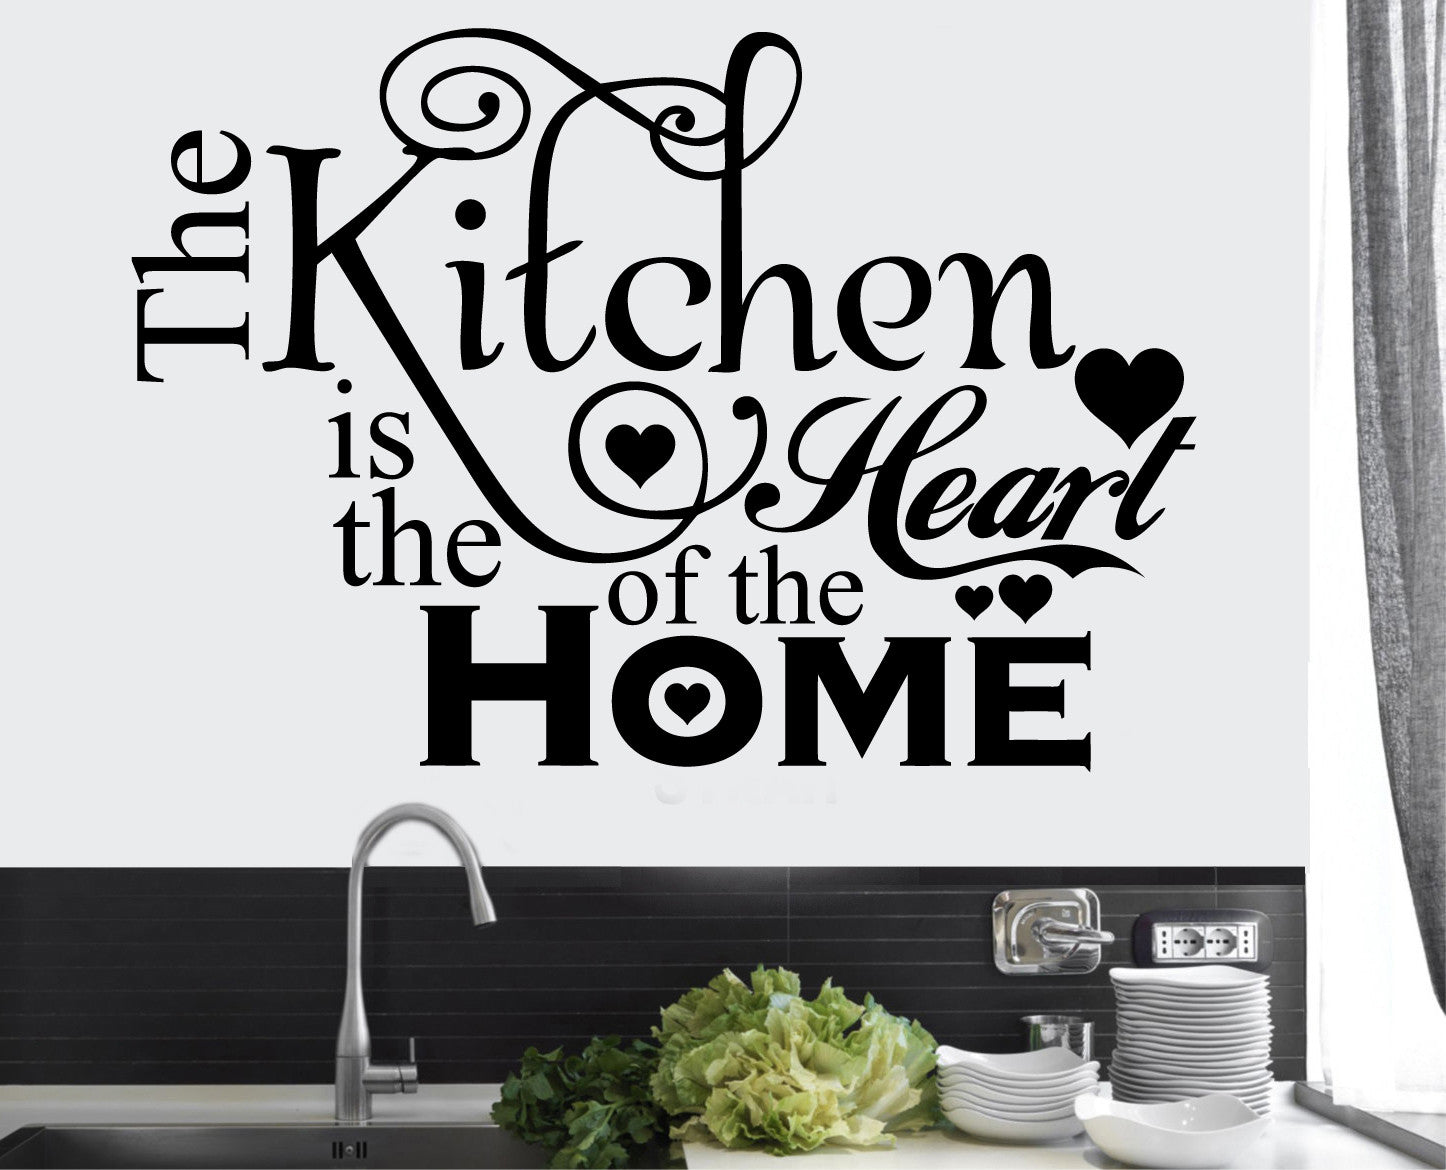 The Kitchen is the Heart of the Home Wall Art Vinyl Stickers Transfers Murals Decals